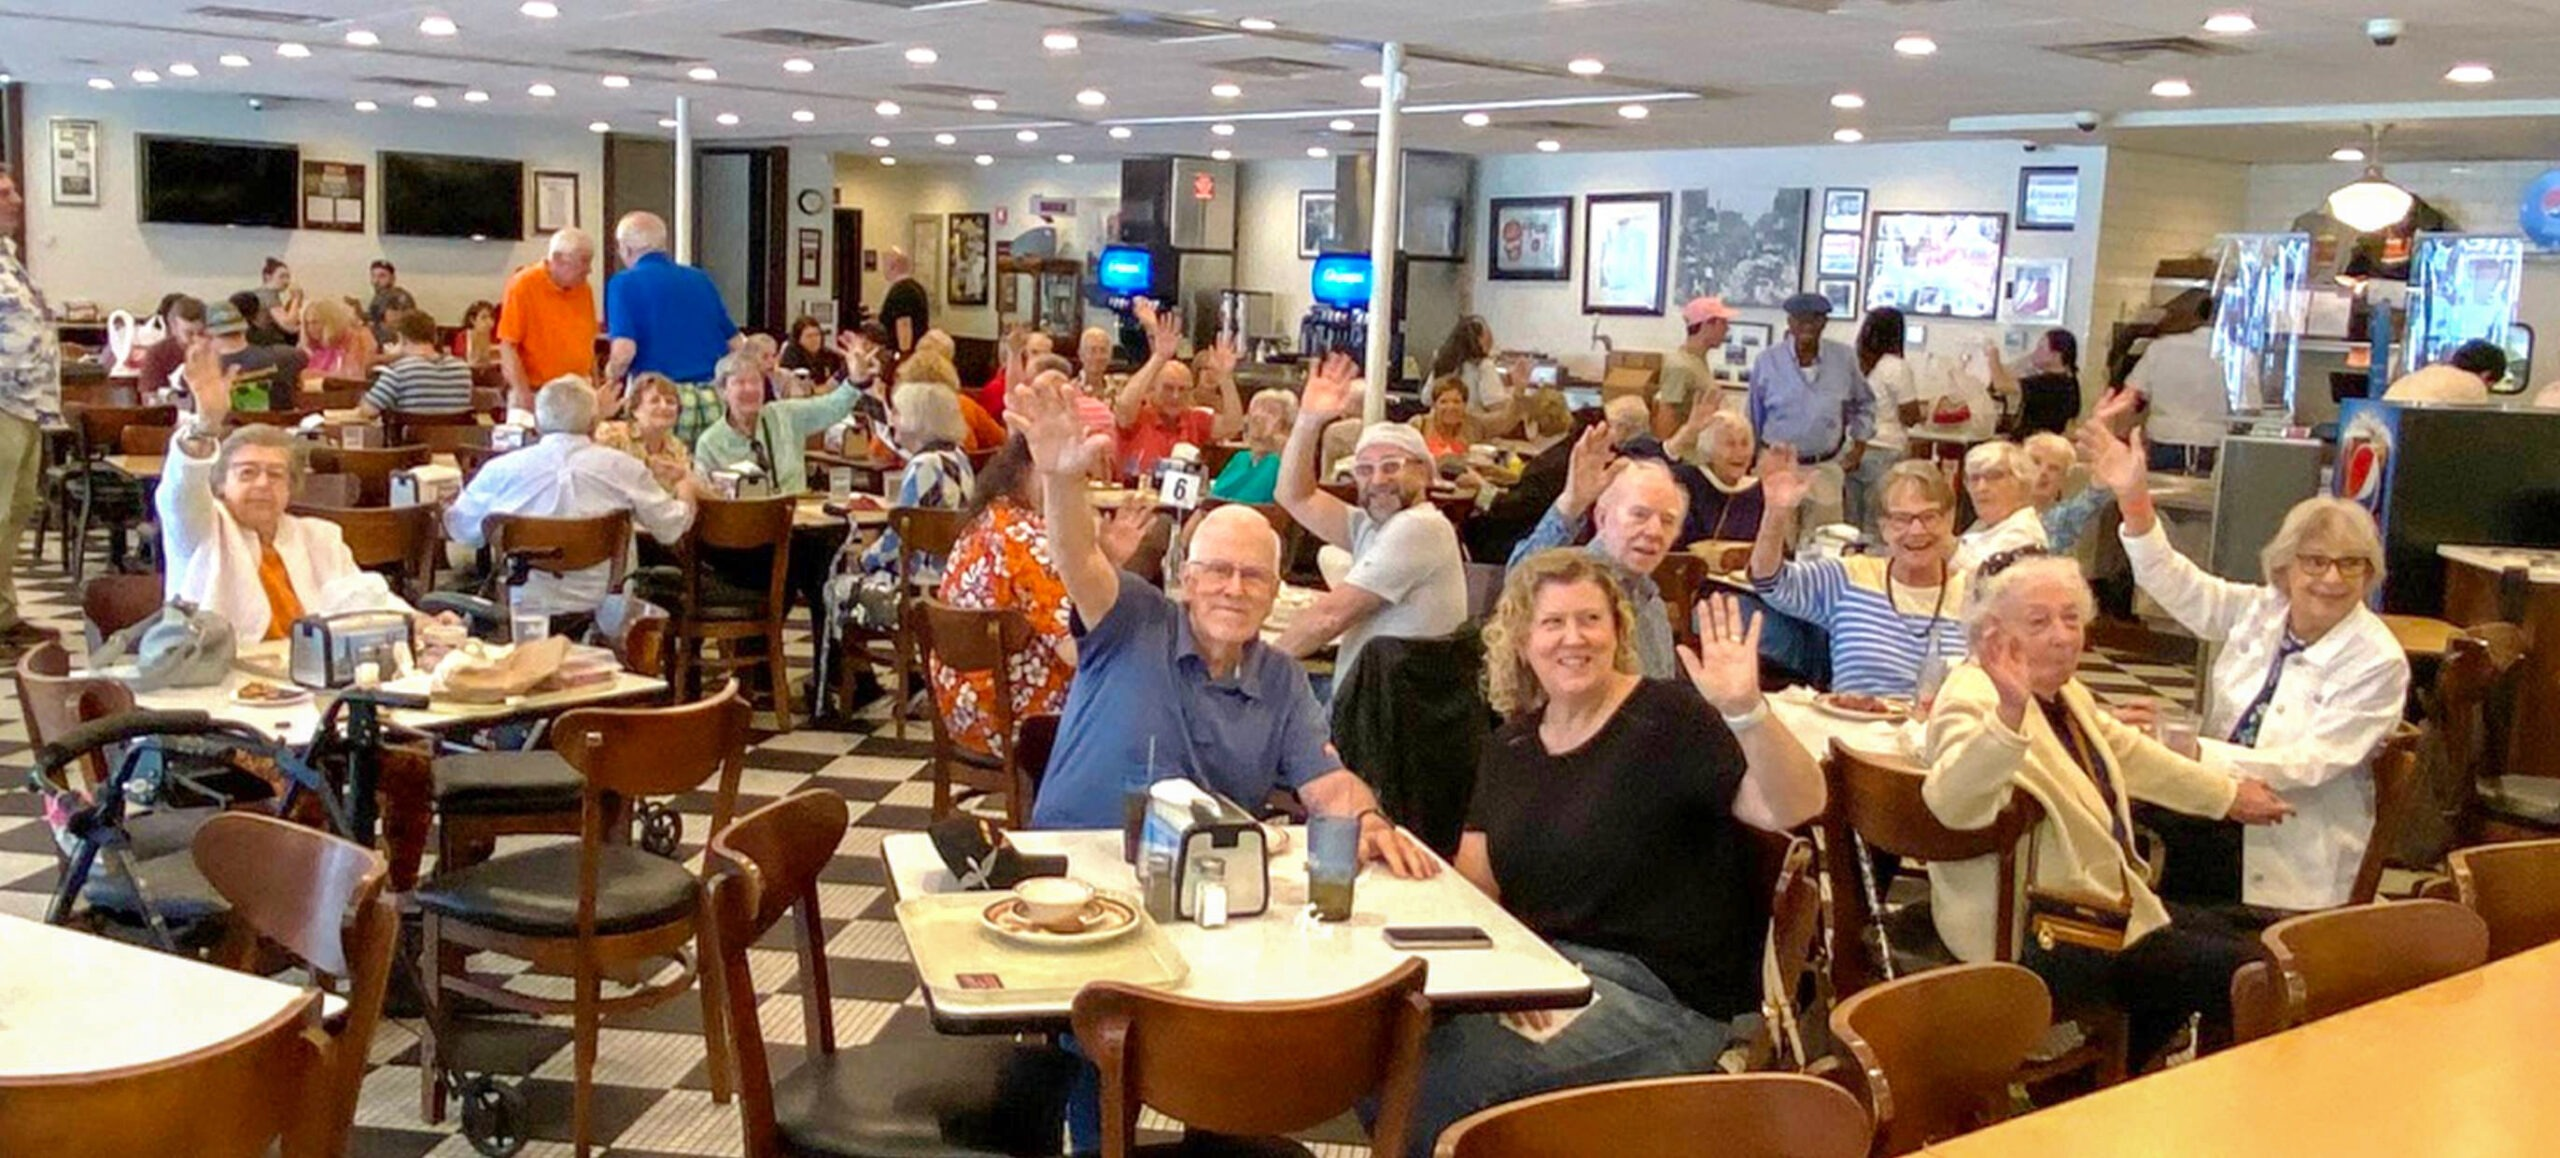 Members dining at Manny's Deli